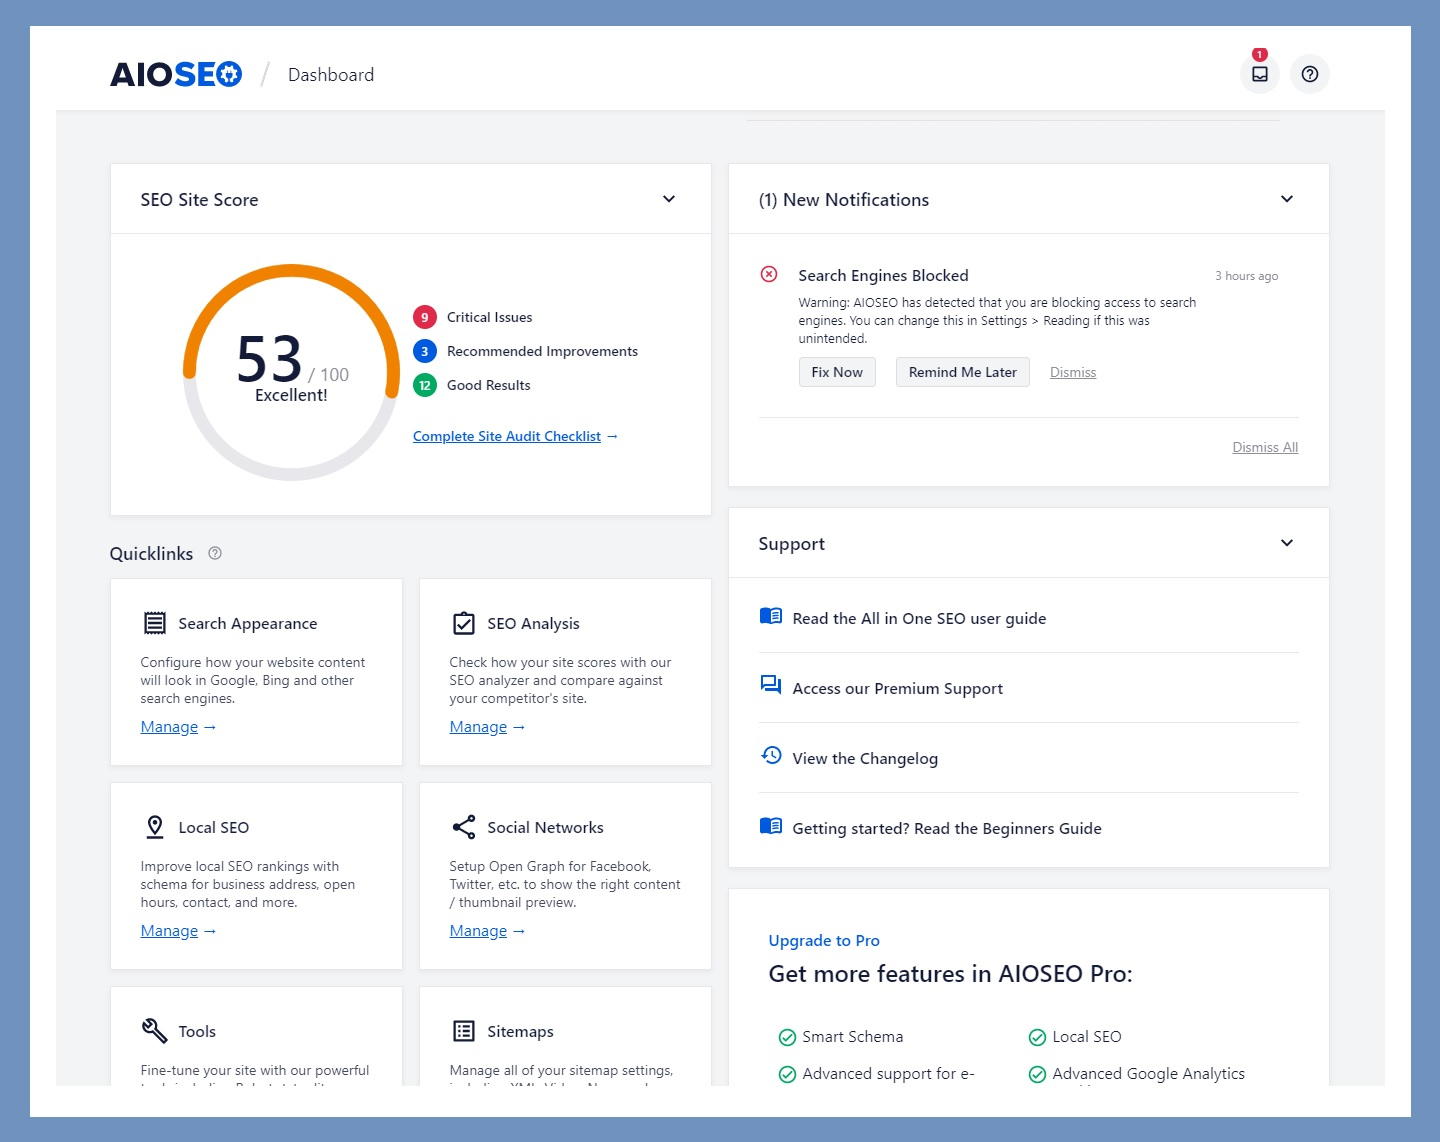 giao dien trang dashboard cua all in one seo